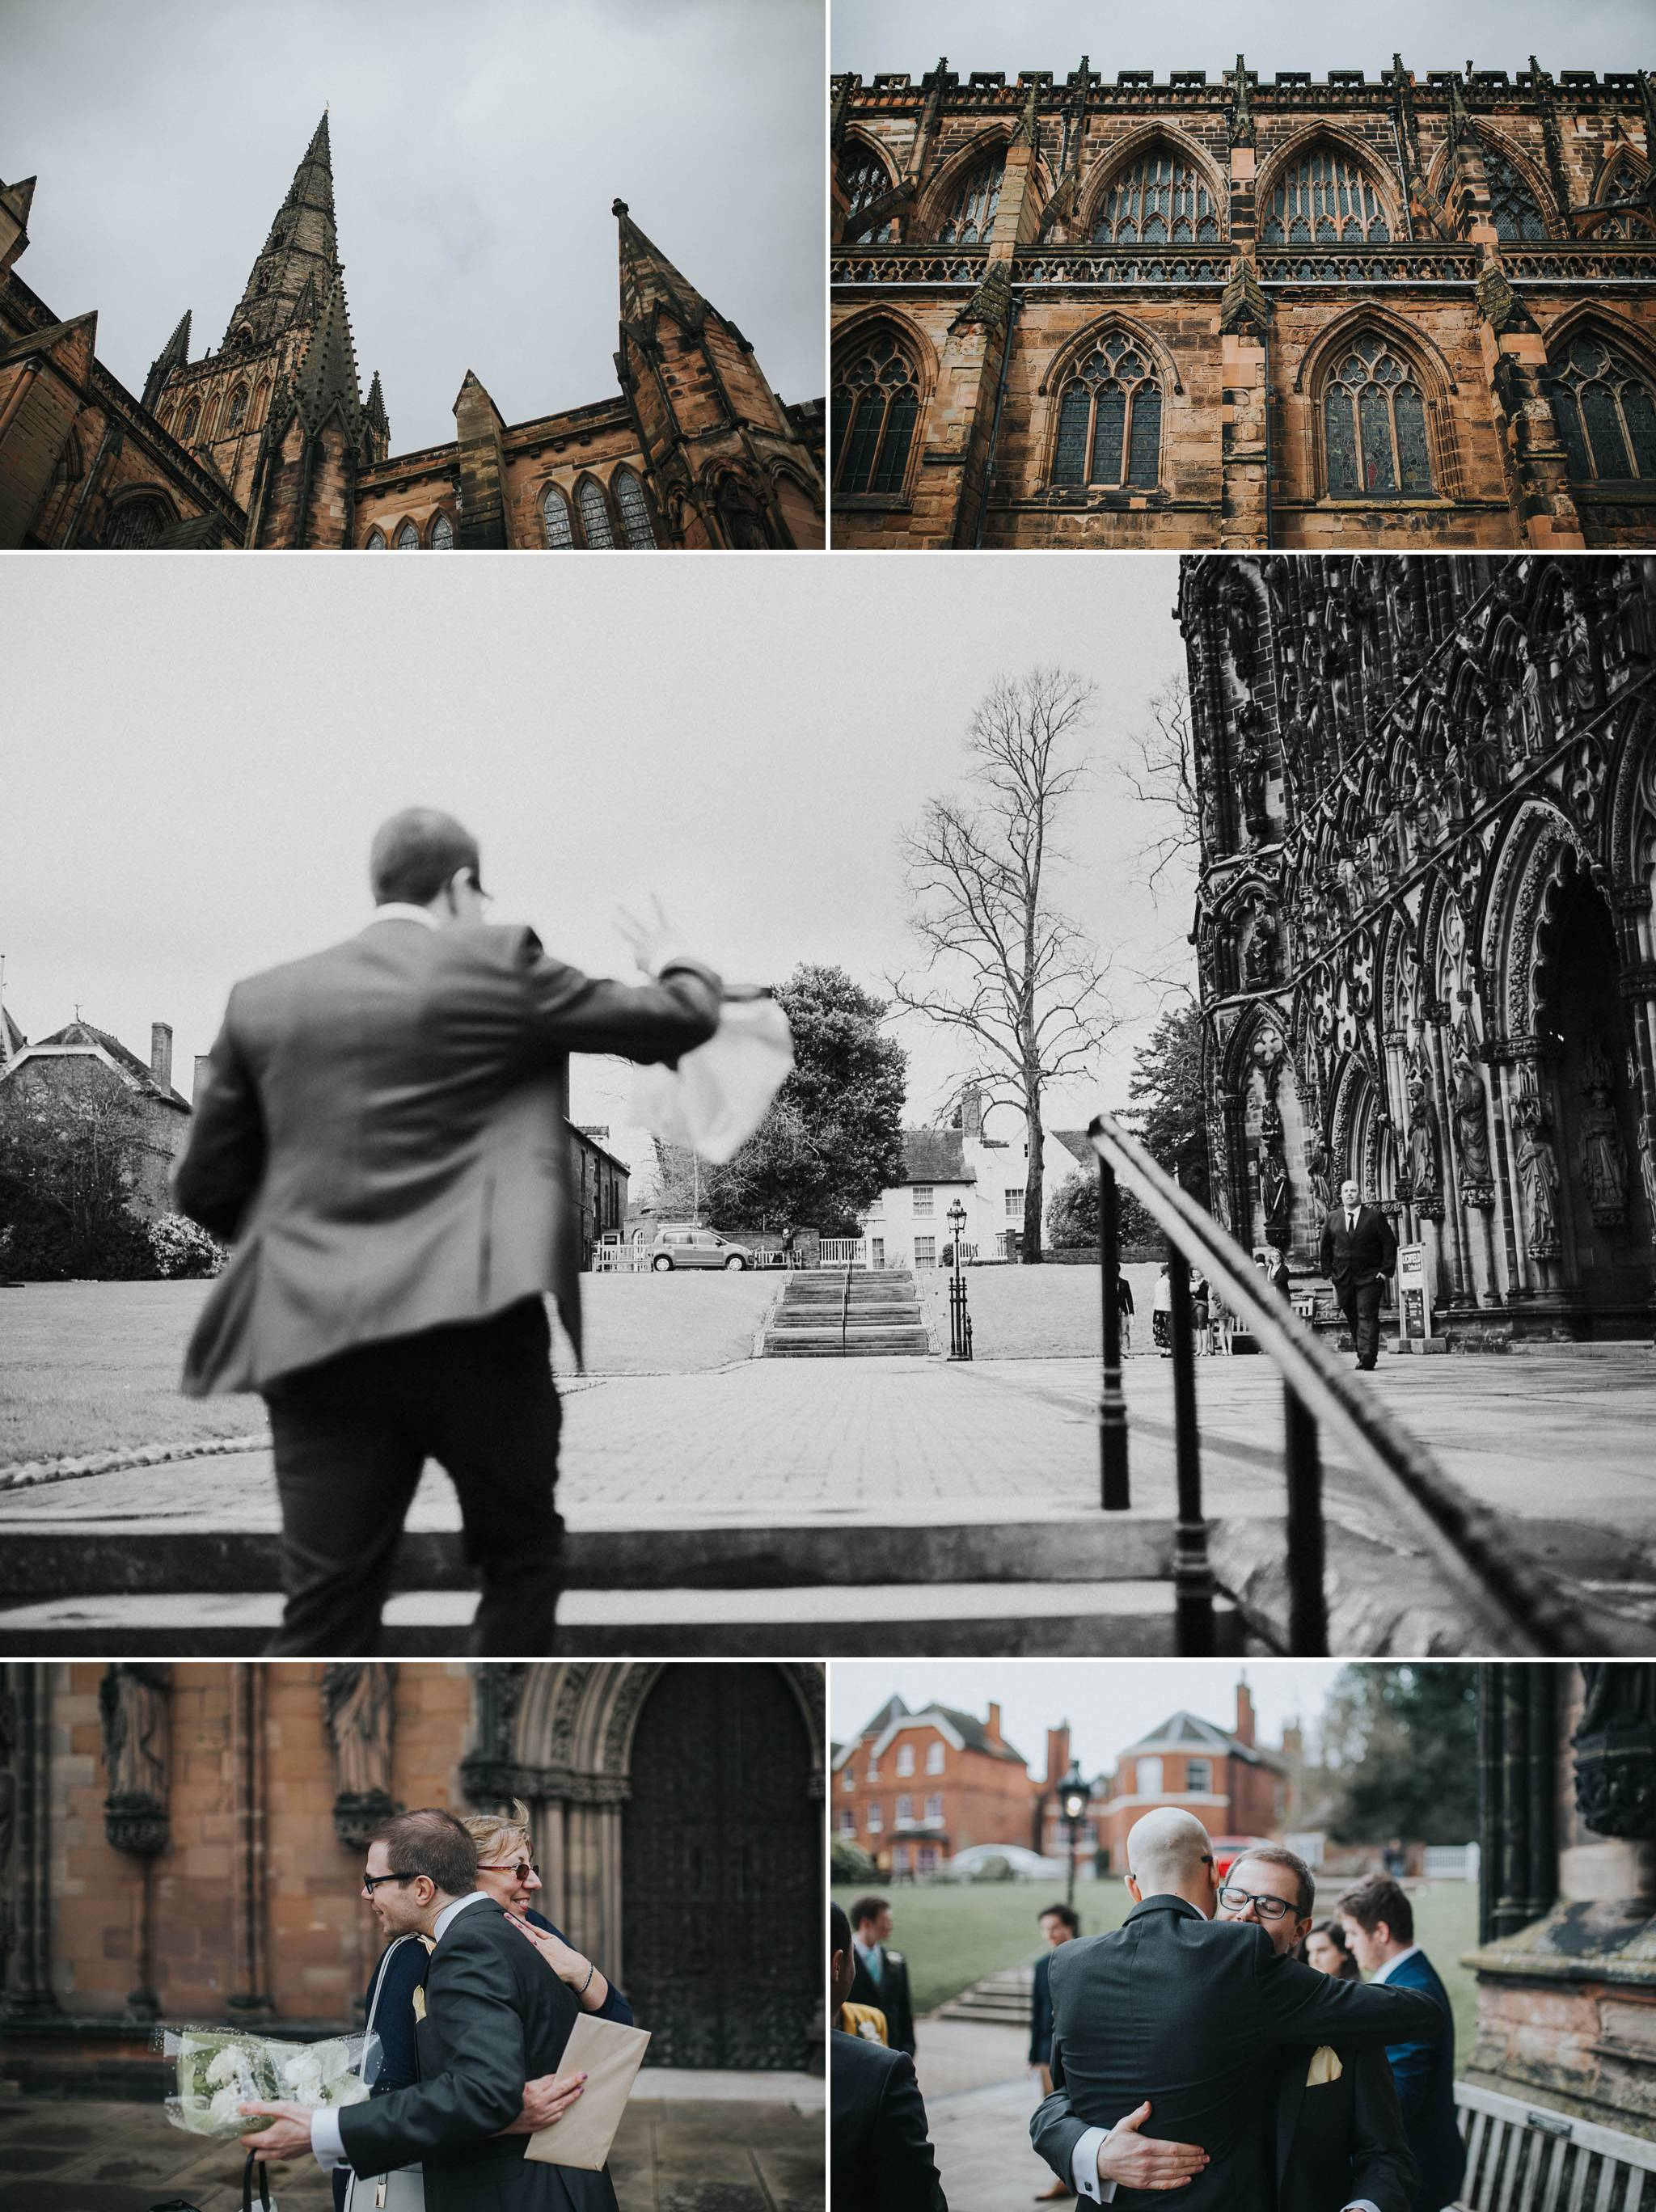 lichfield-cathedral-wedding-photography 1.jpg